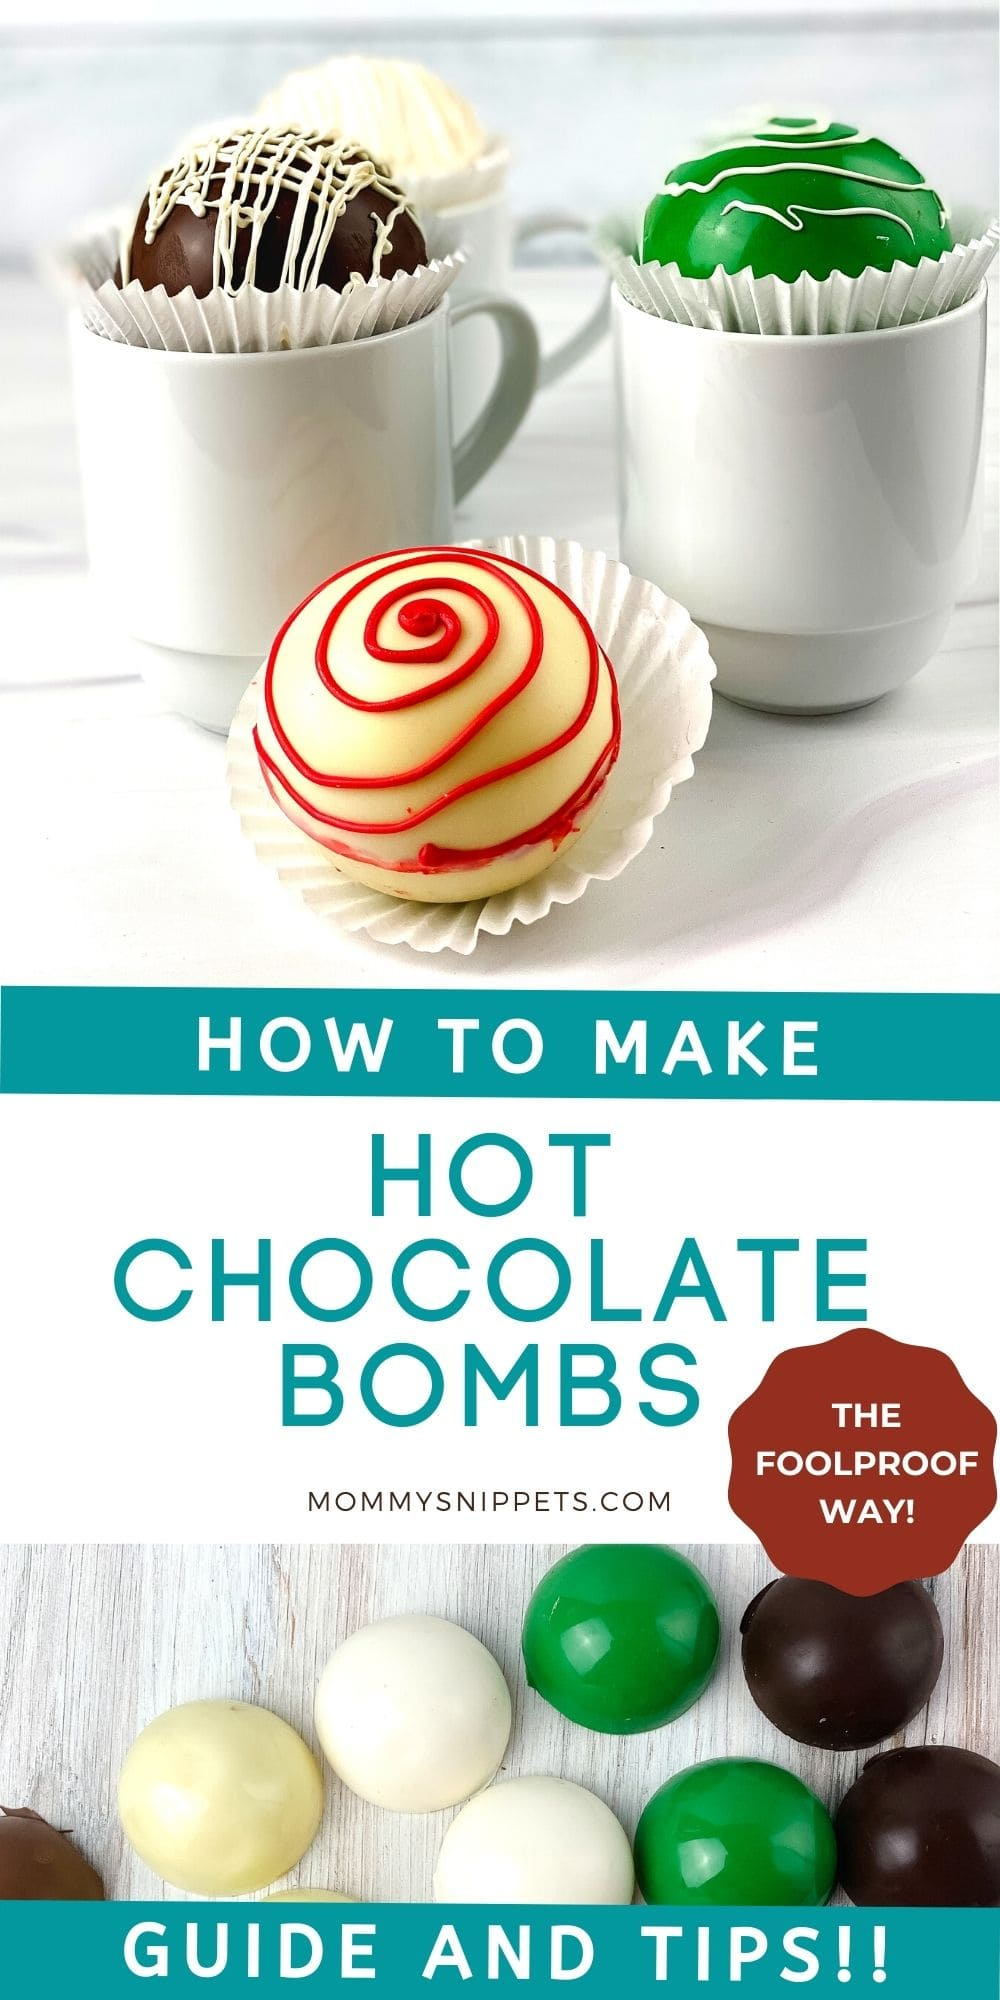 How to Make Hot Chocolate Bombs the Foolproof Way